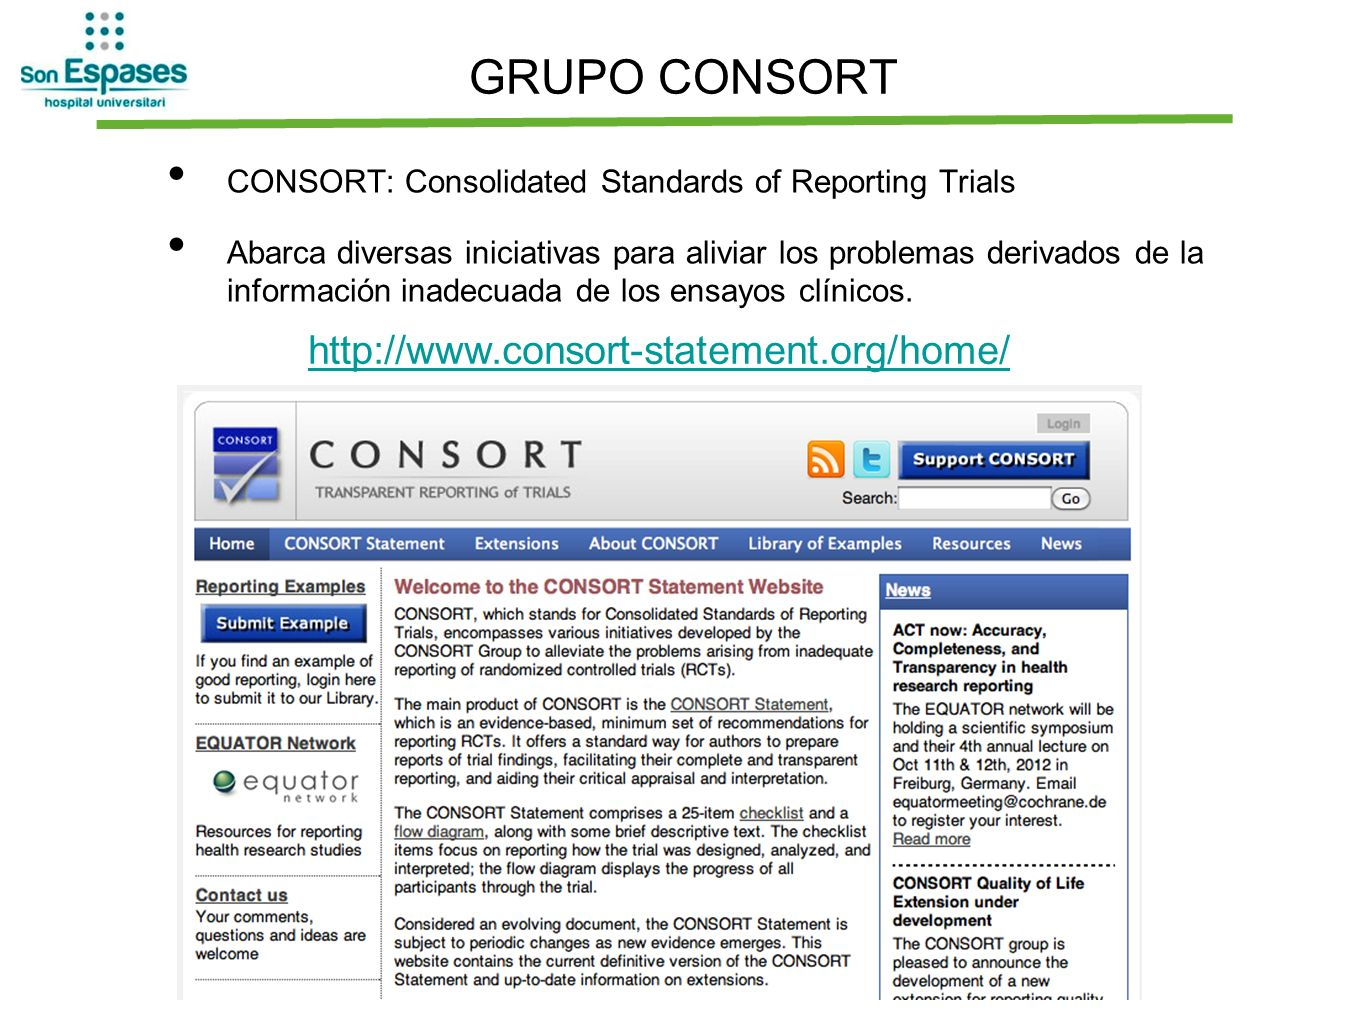 GRUPO CONSORT http://www.consort-statement.org/home/